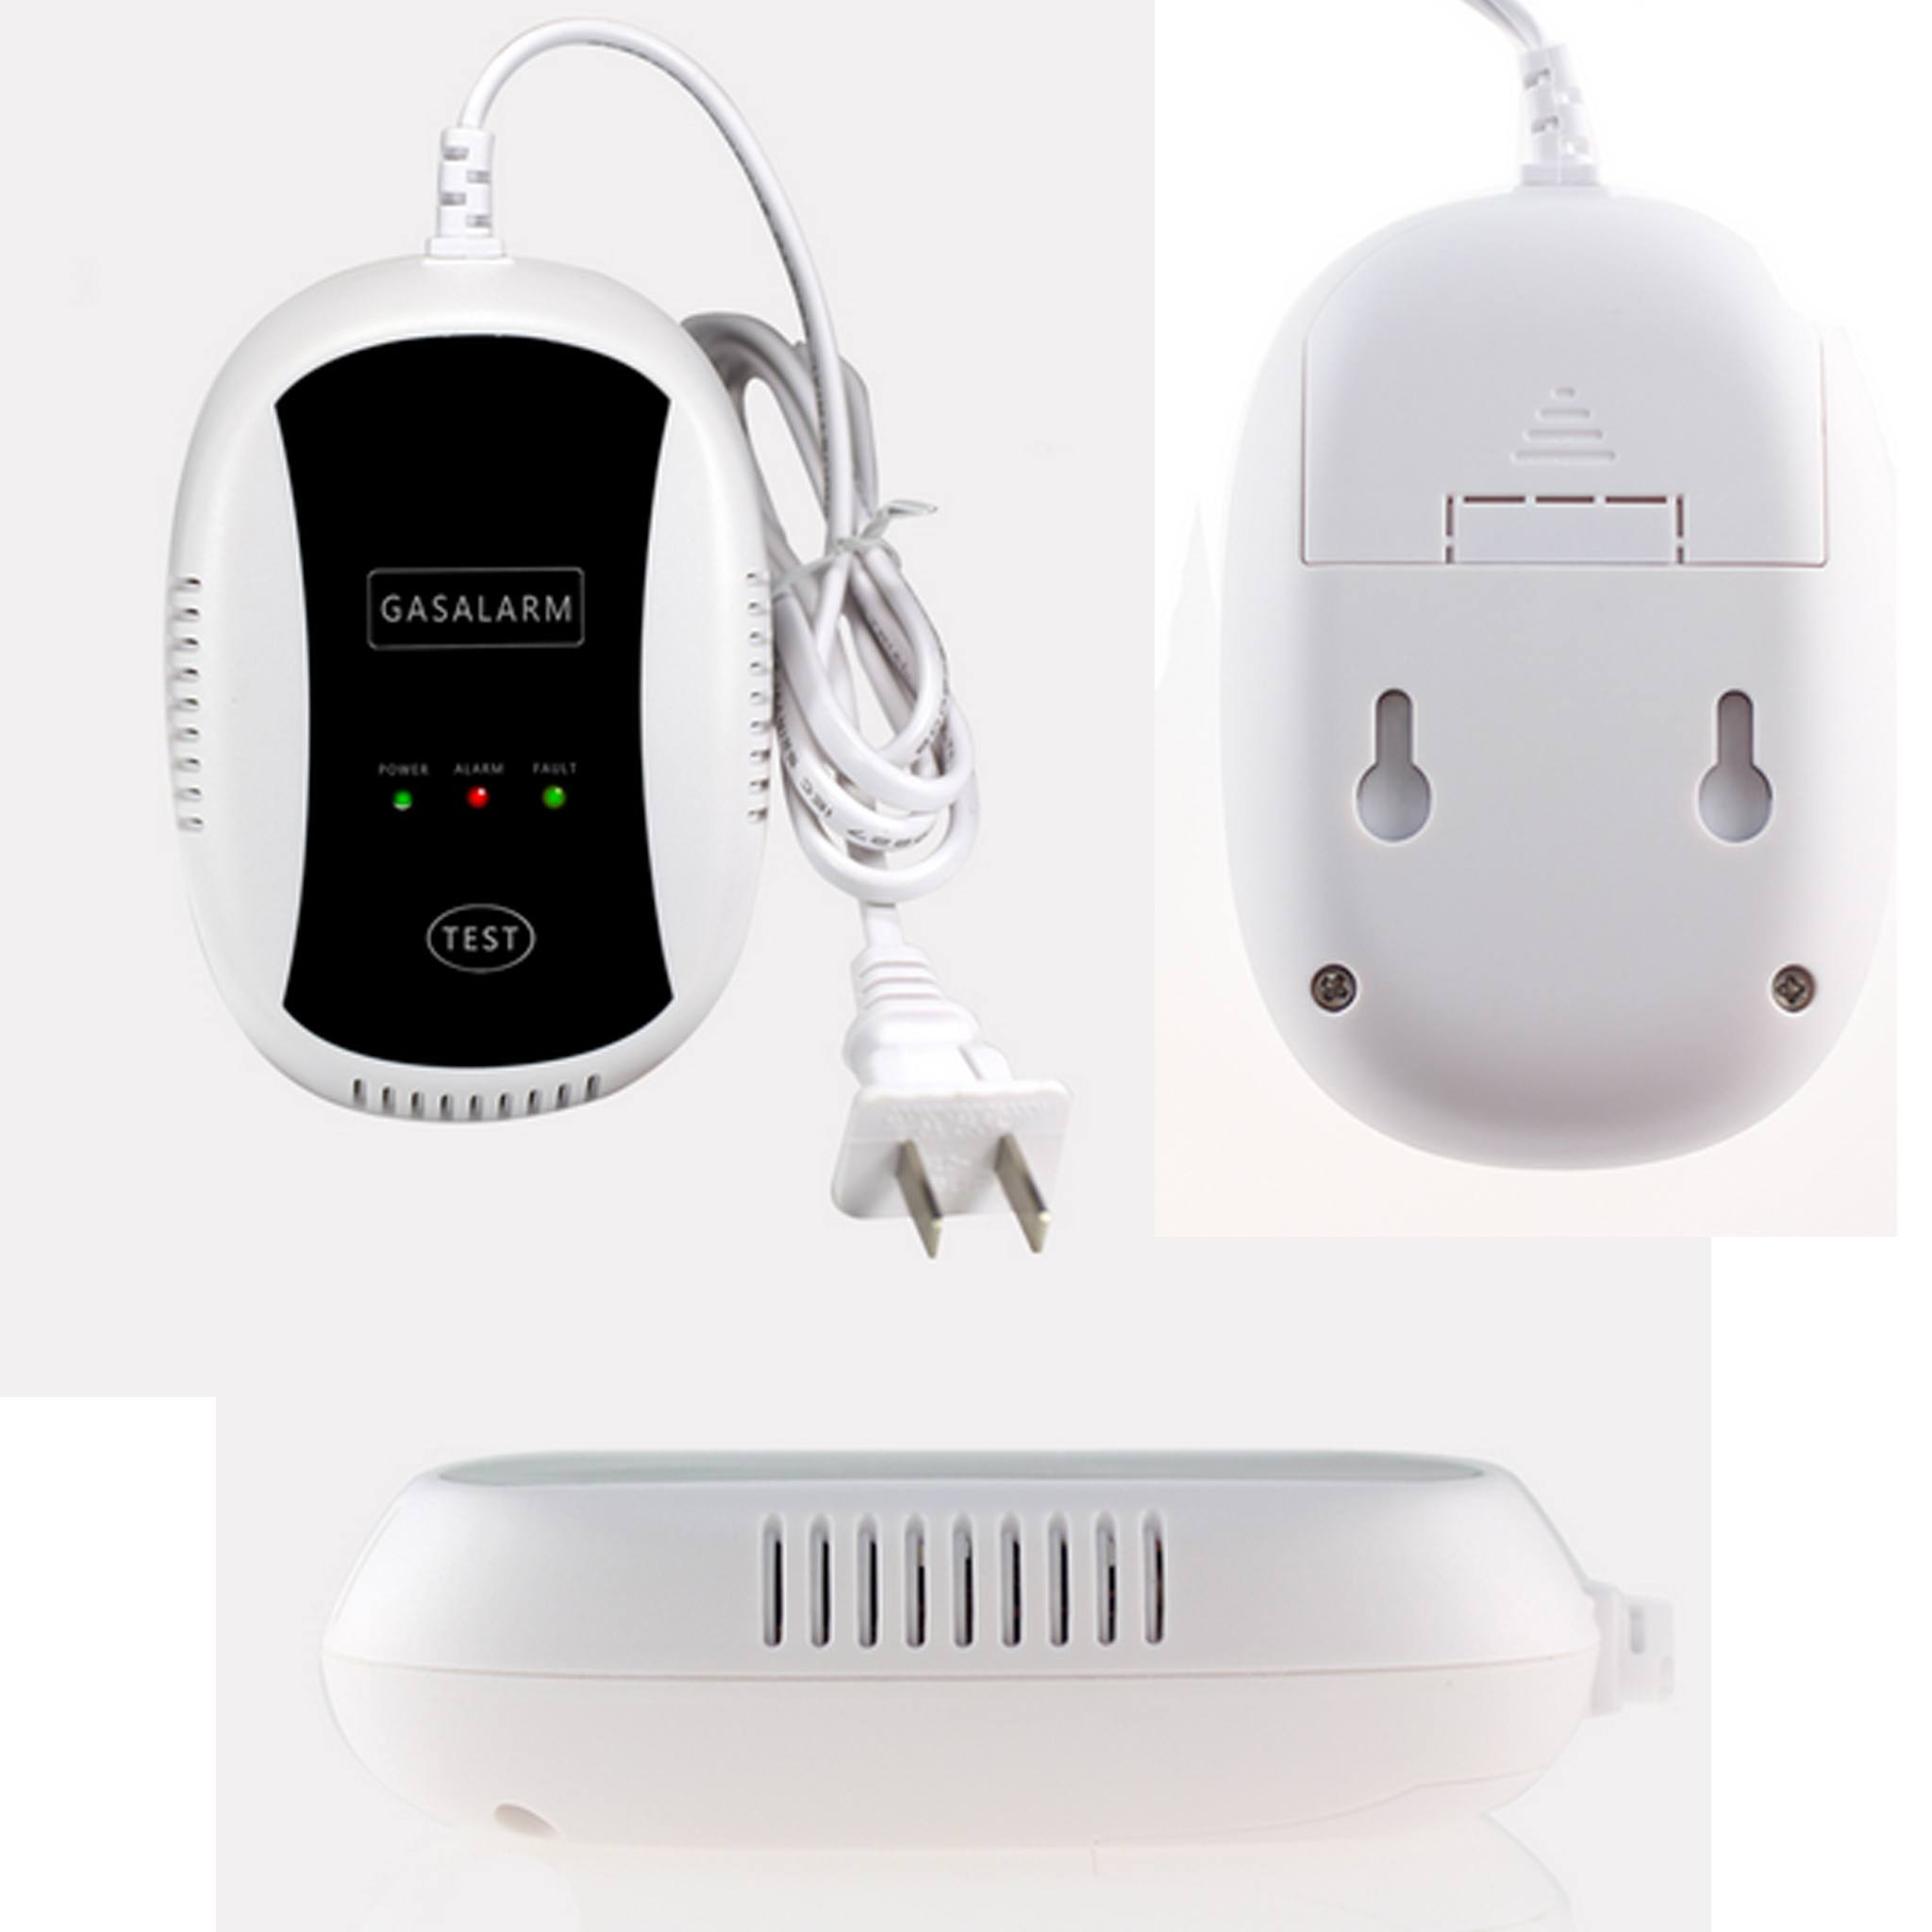 Deteksi Bocor LPG - Wireless Portable Alarm Gas Sensor Detector Wall